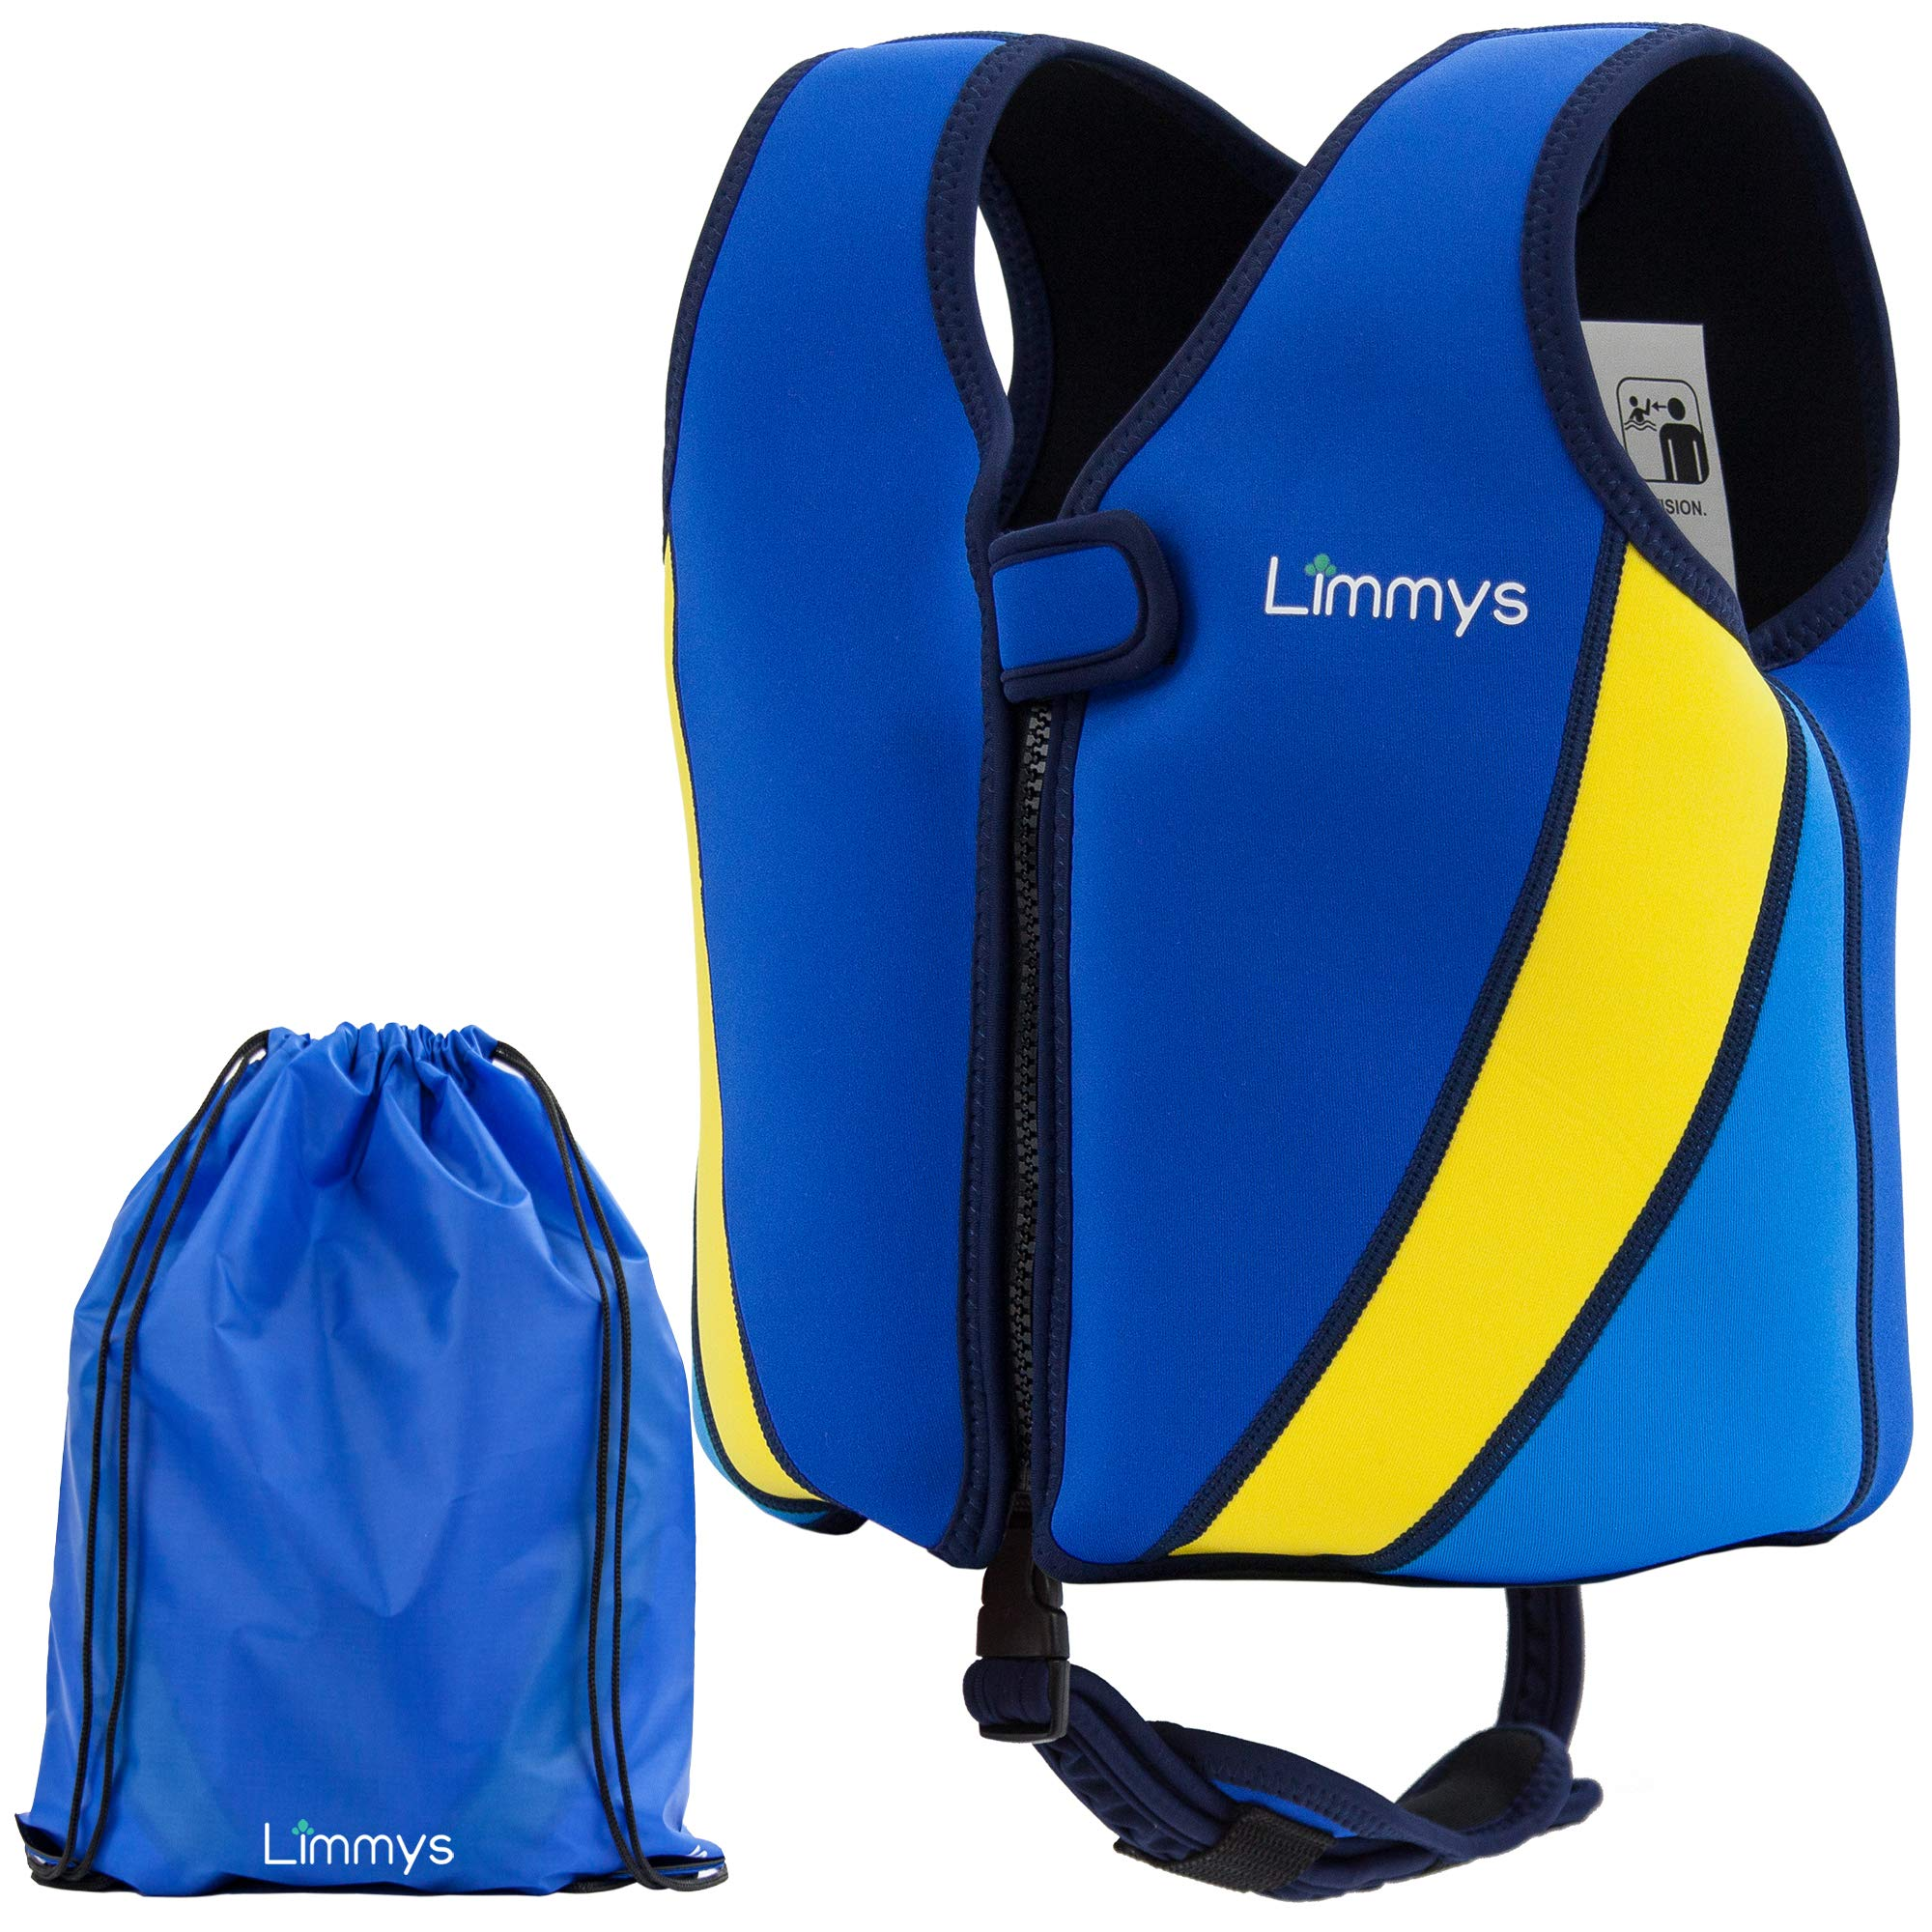 Limmys Premium Neoprene Swim Vest for Children, Ideal Buoyancy Swimming Aid for Boys and Girls, Bonus Drawstring Bag Included